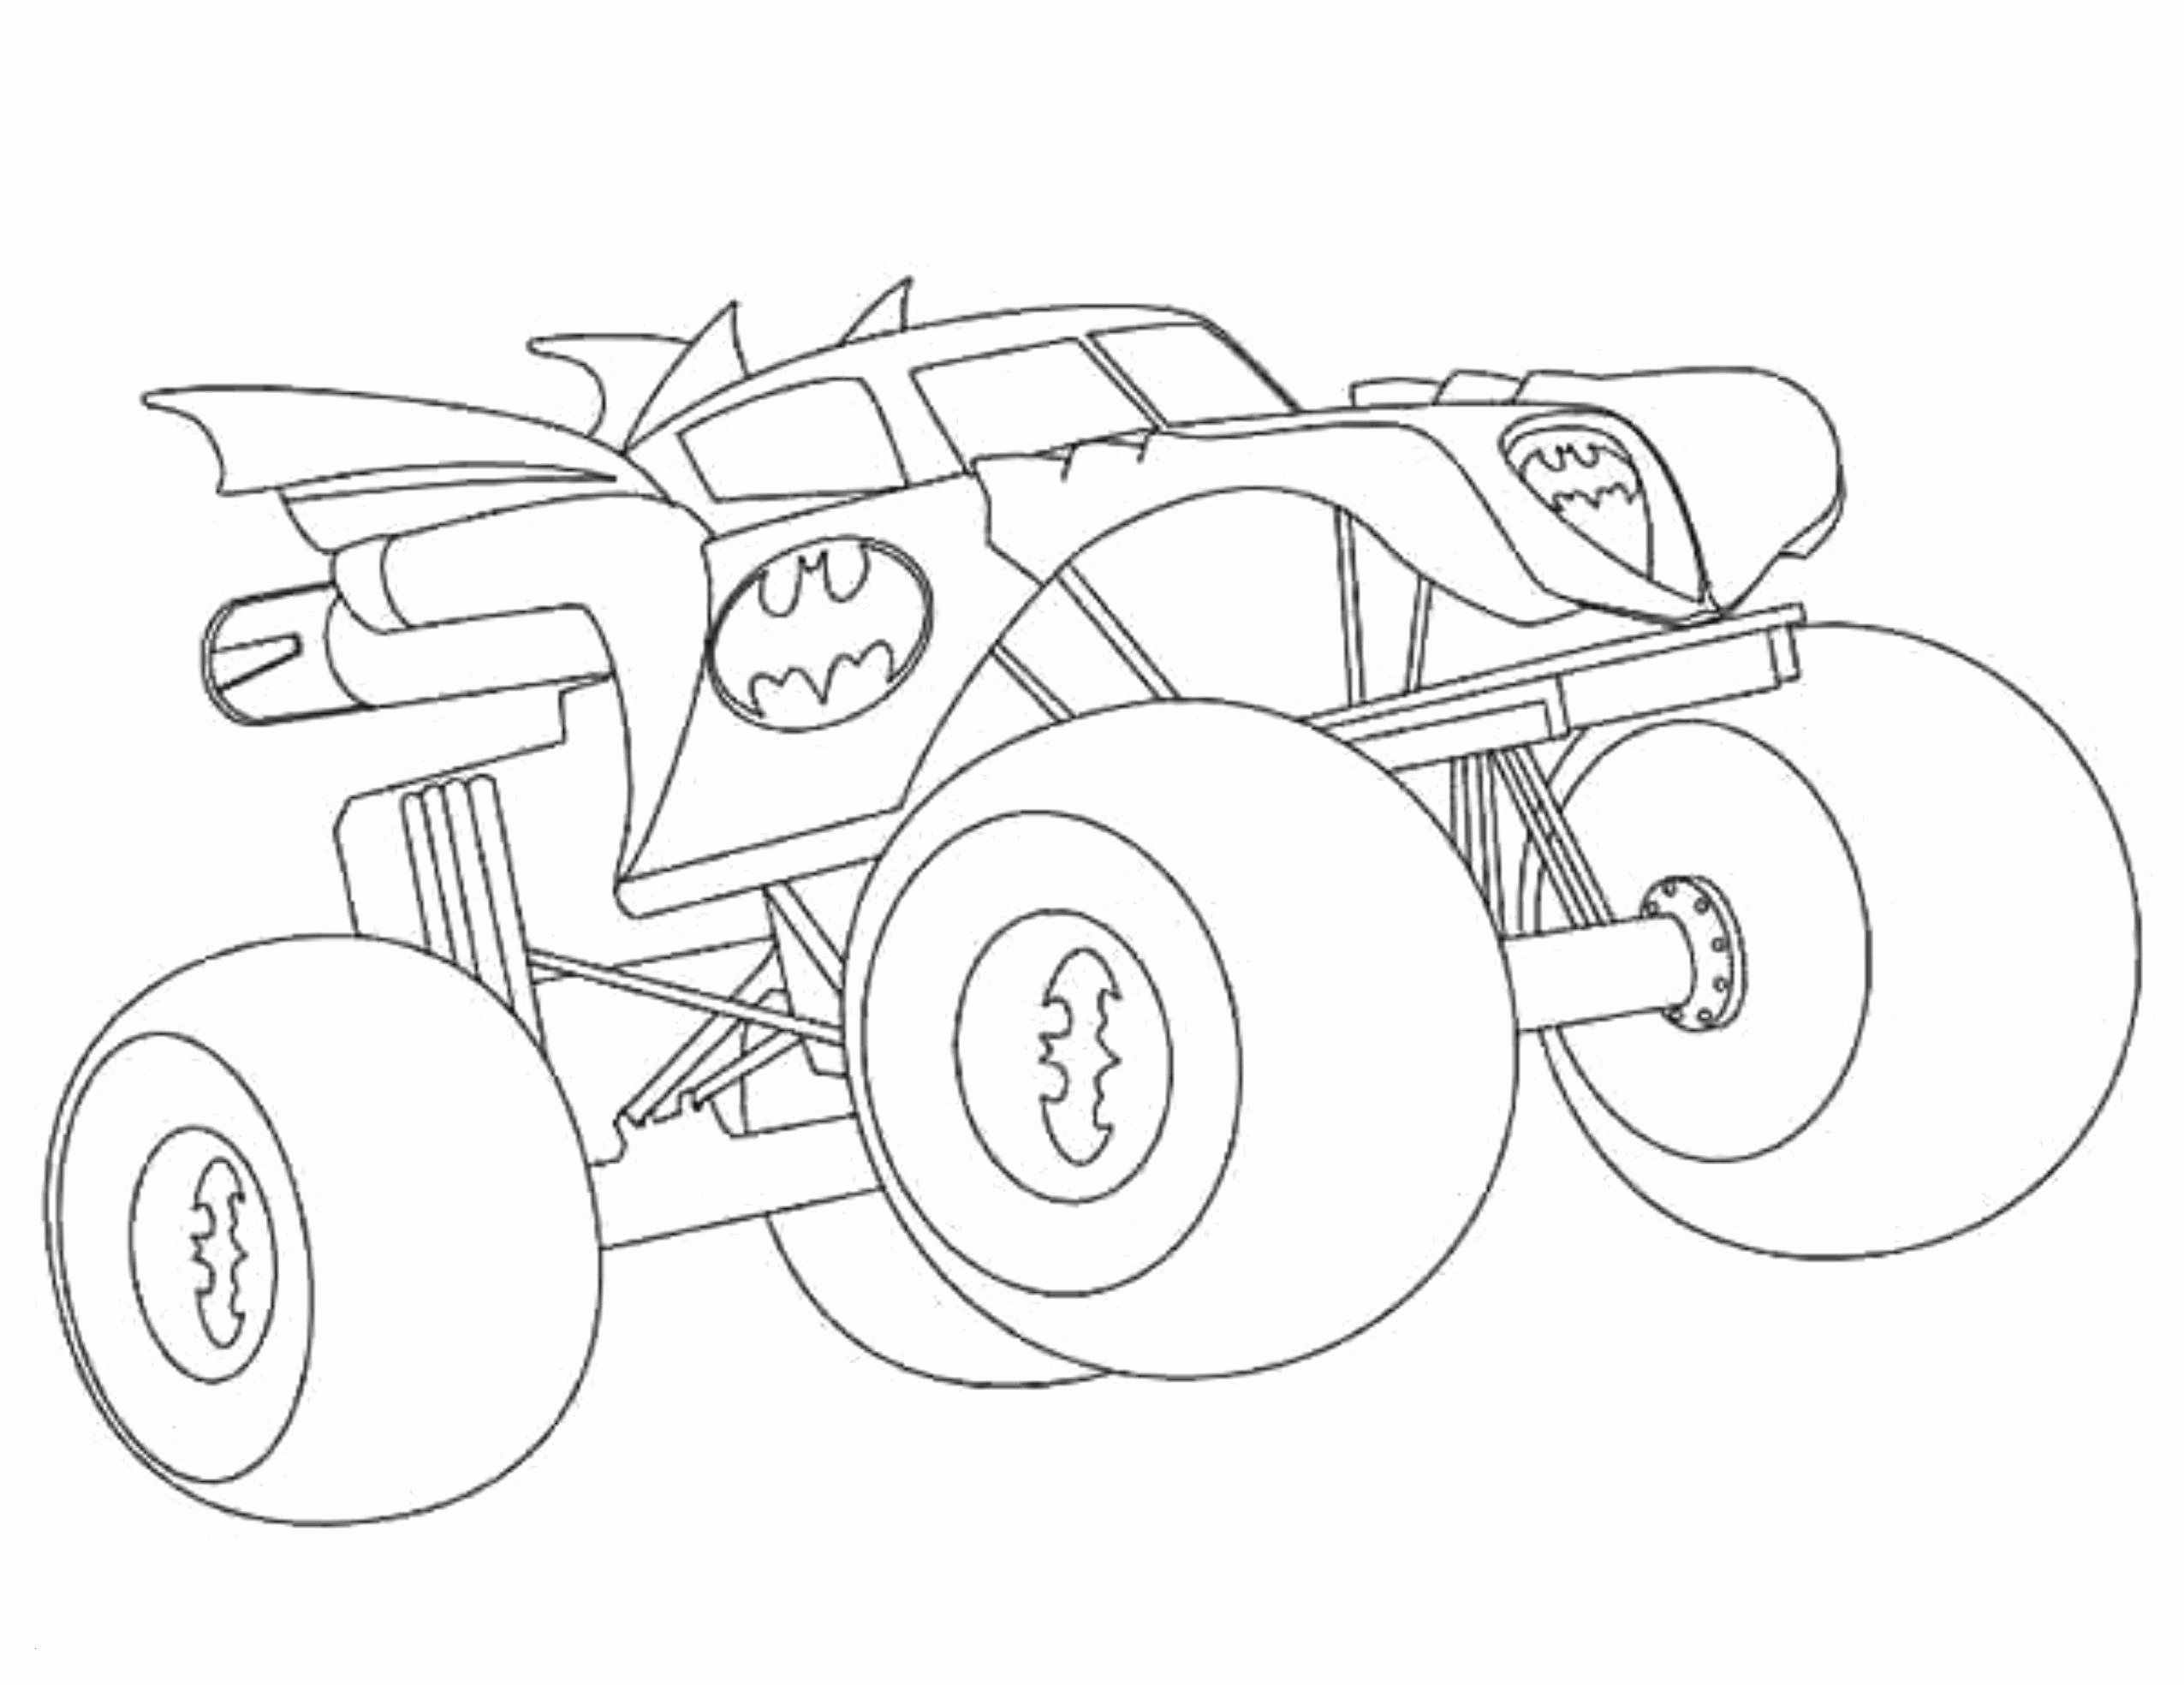 Pin By Elias Ornelas On Eli Monster Truck Coloring Pages Truck